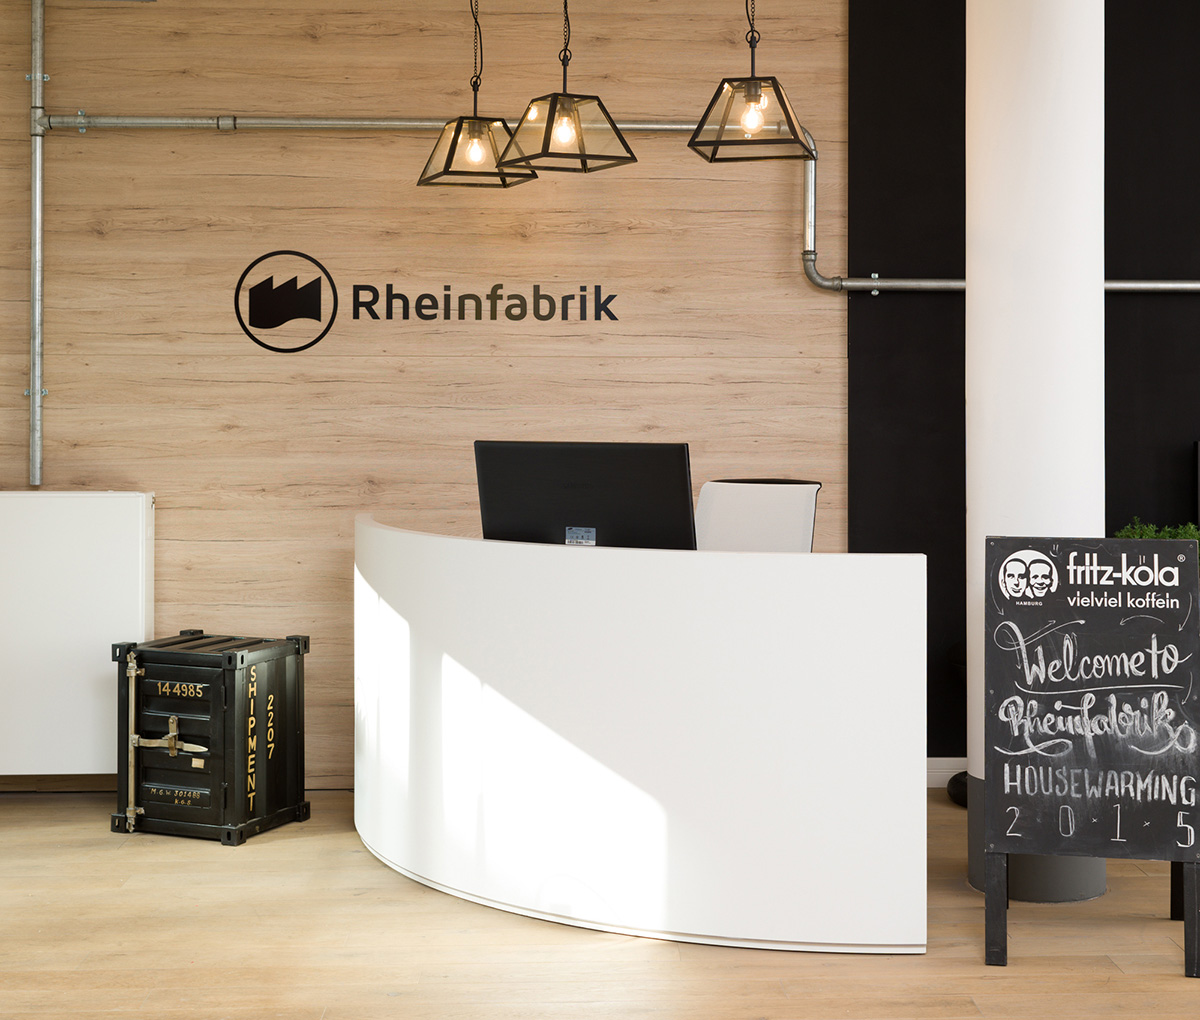 Inside Rheinfabrik's New Dusseldorf Office